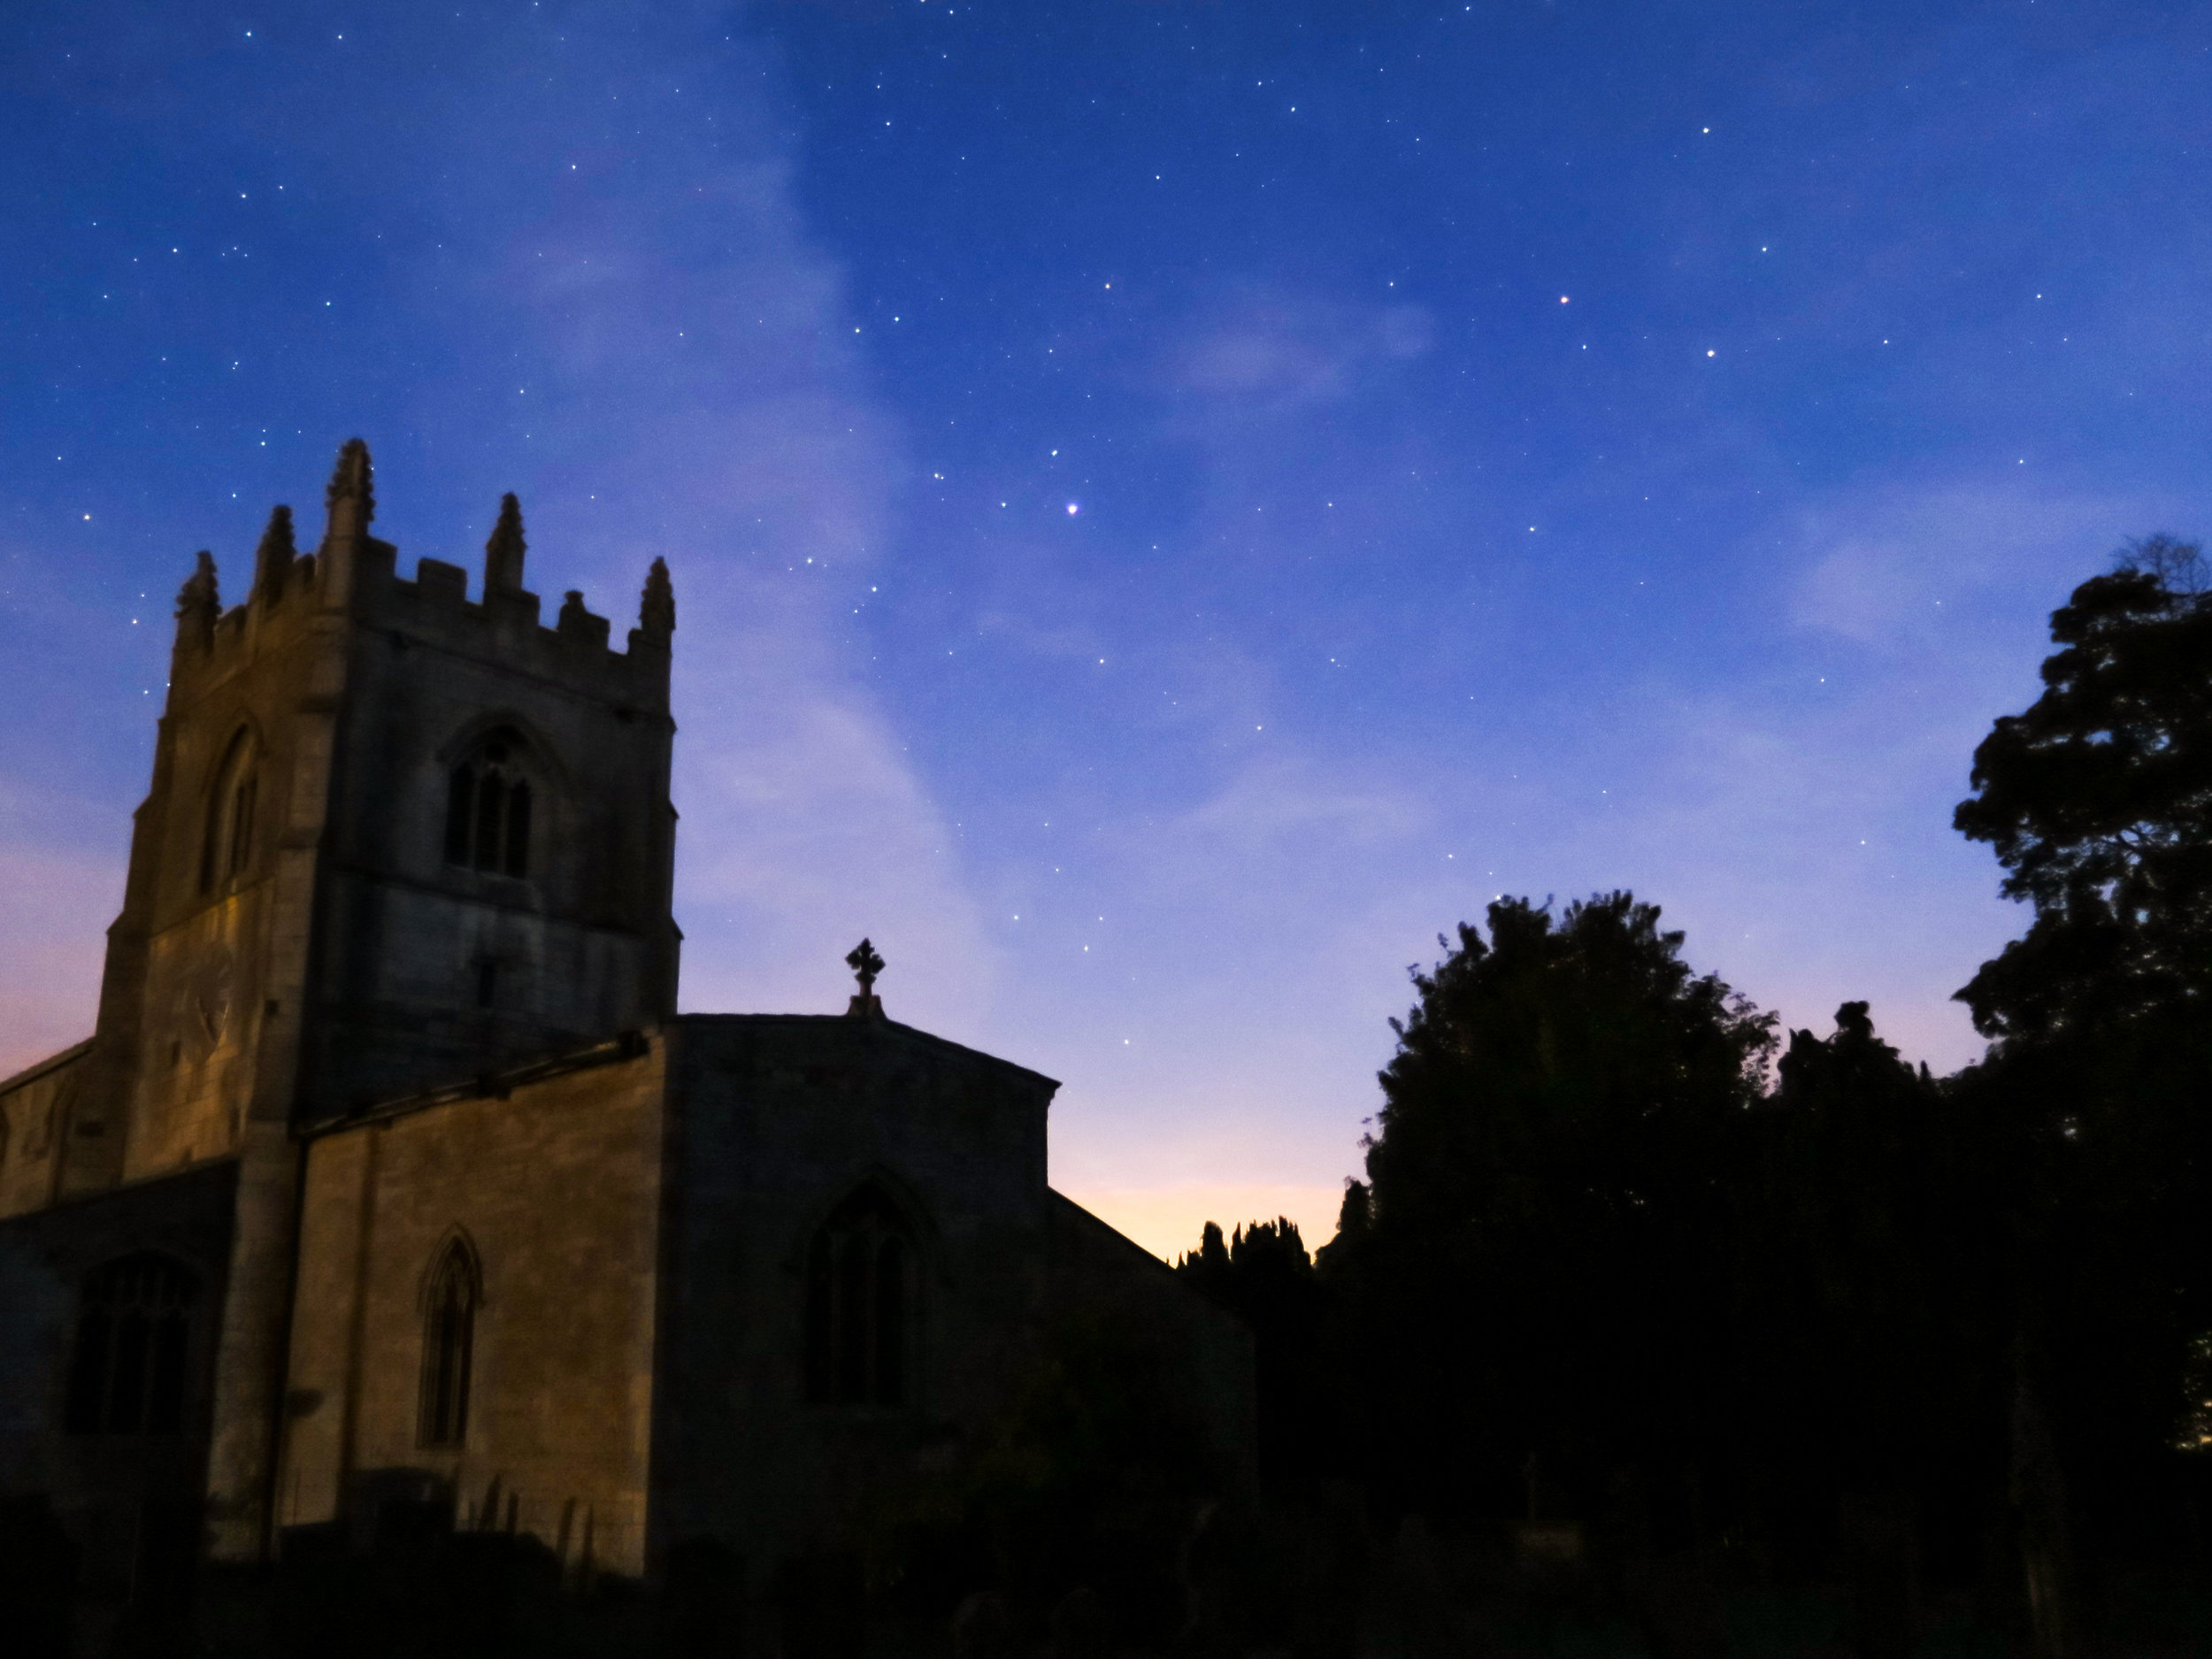 A church near Melton Mowbray in Leicestershire where LSC undertook a building inspection and dusk/dawn emergence and re-entry surveys for roosting bats to support a planning application for essential roof repair works.